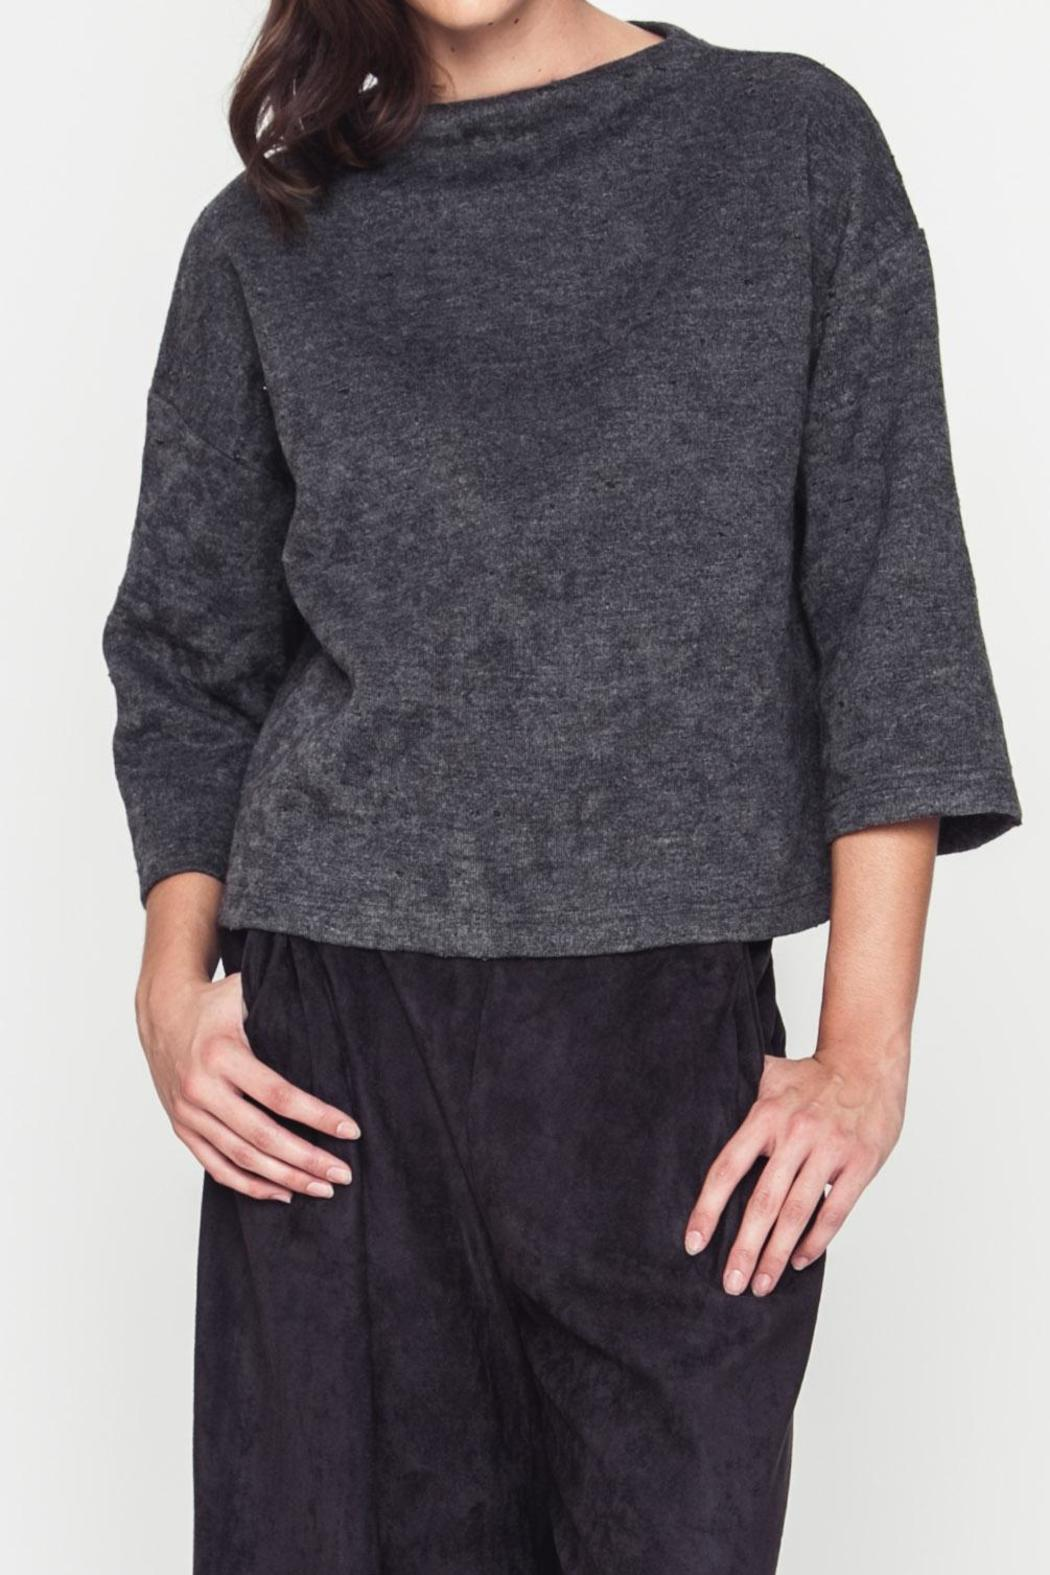 Movint Lucienna Boat Neck Top - Main Image